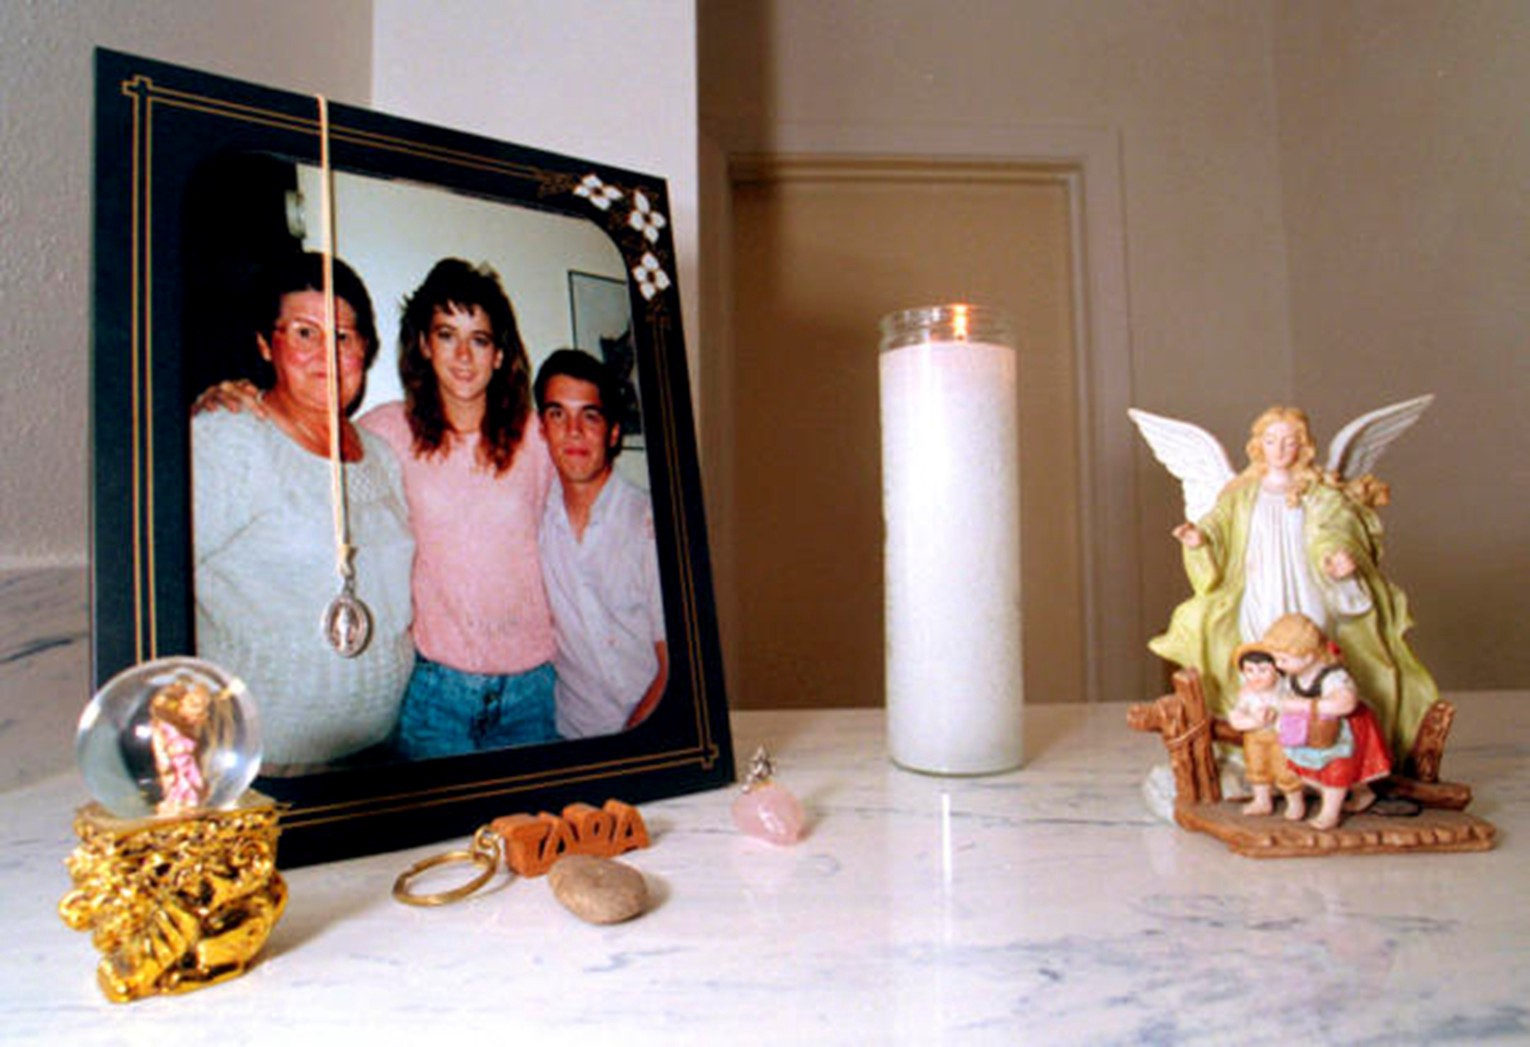 Tara?s parents kept a candle lit since their daughter vanished in 1988.